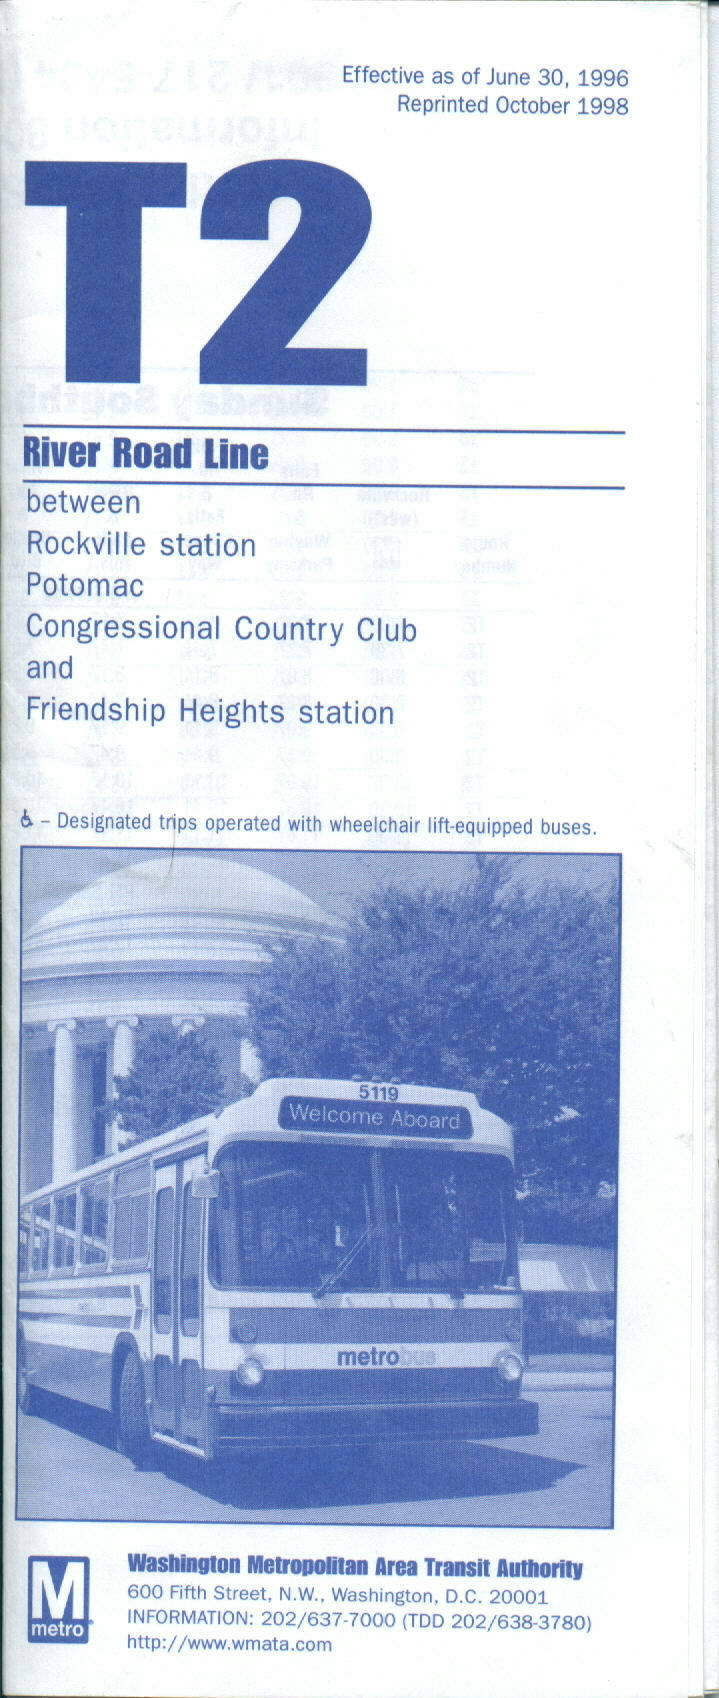 metrobus schedules over the years